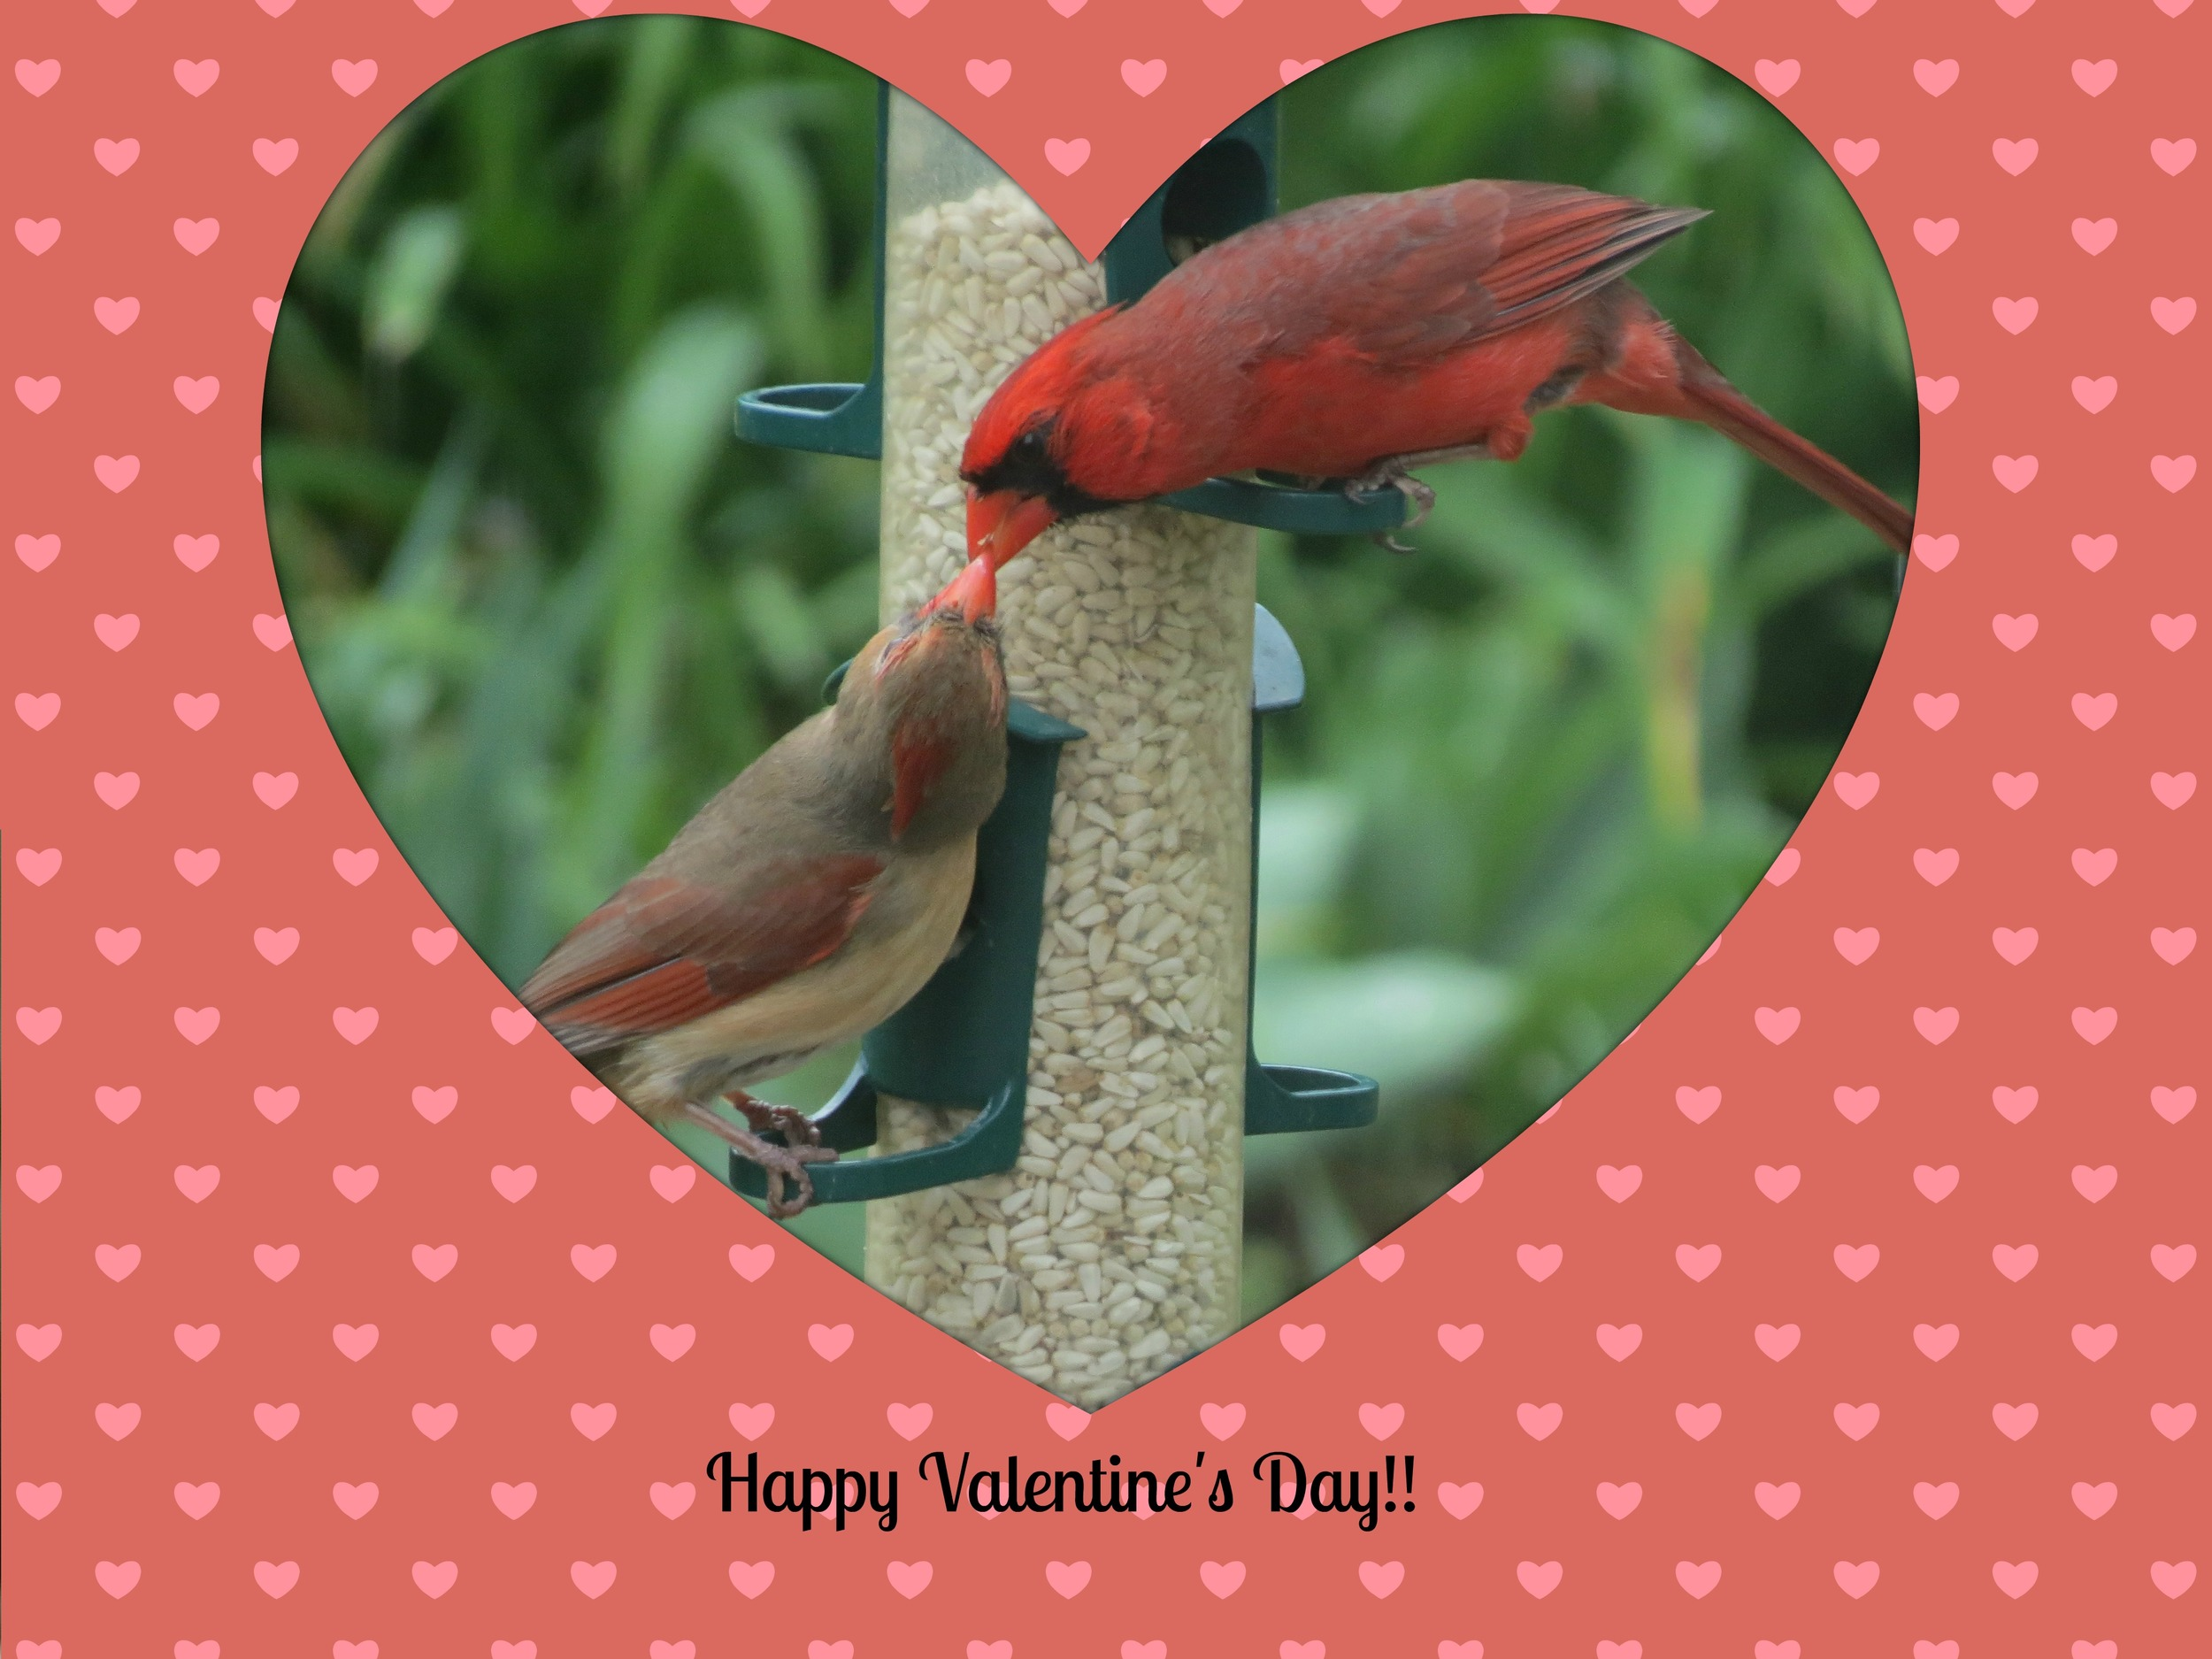 A favourite pair in our garden - Beautiful Northern Cardinals!!